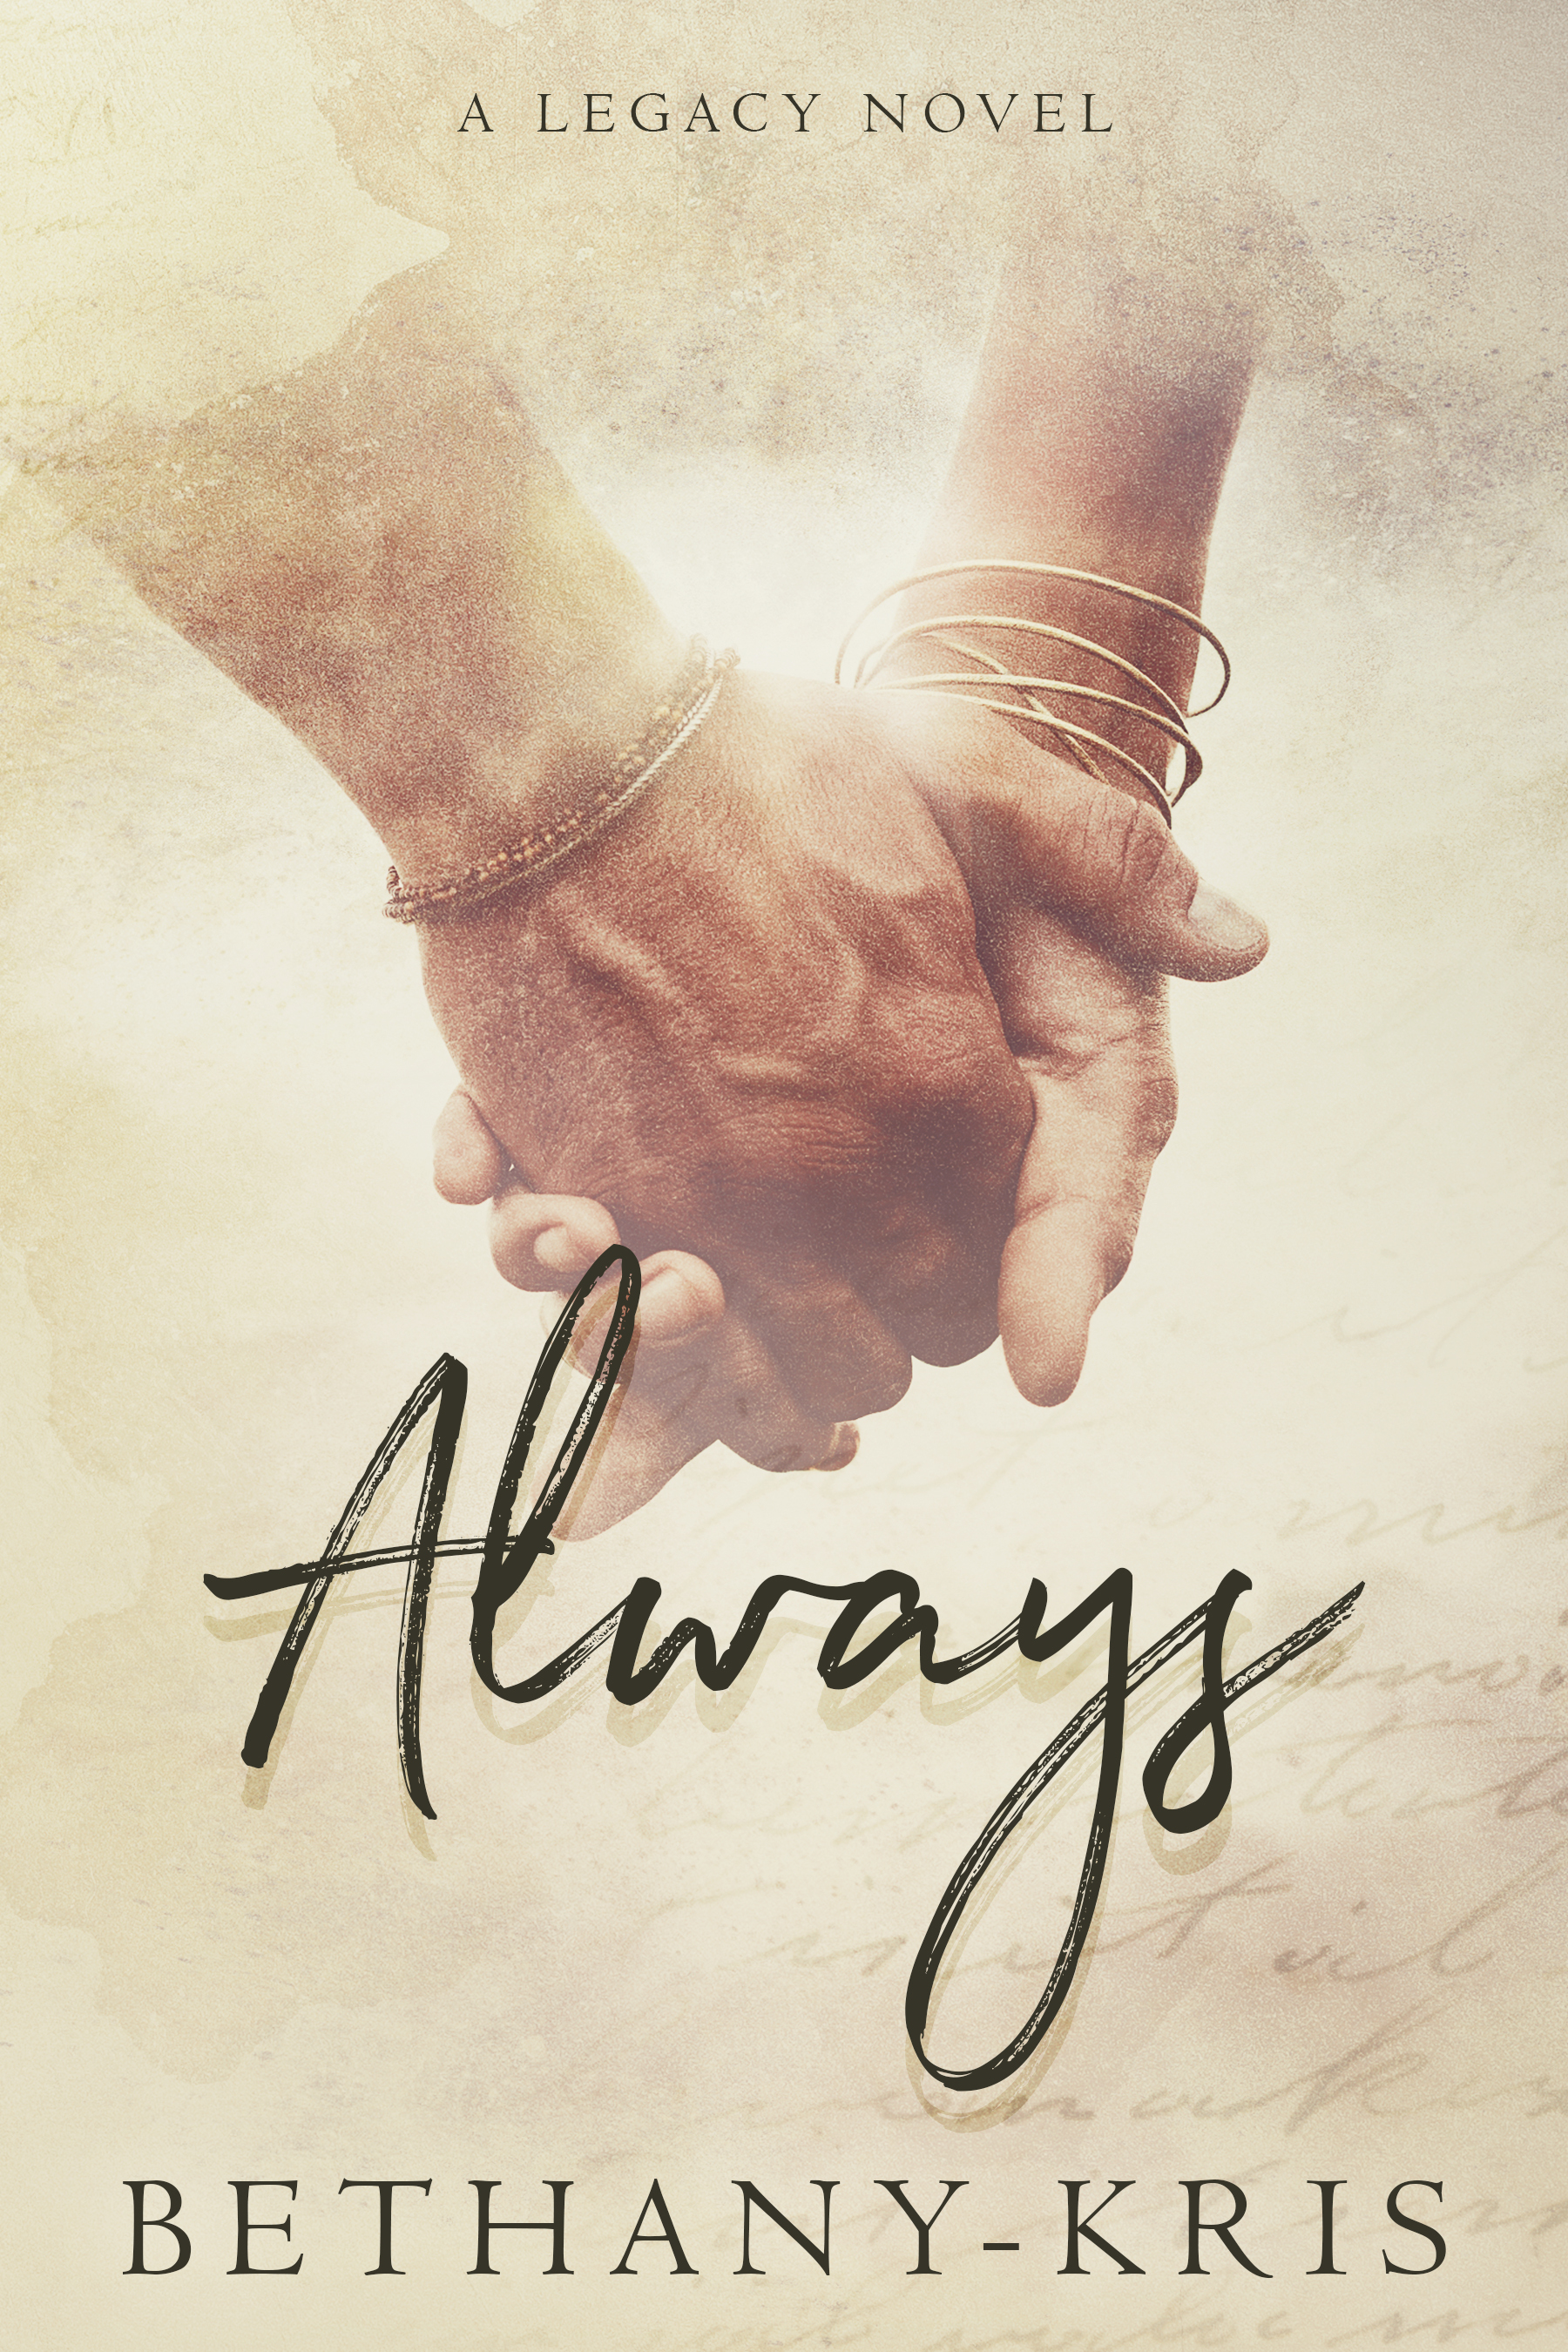 Bethany-Kris - Cross + Catherine 1 - Always